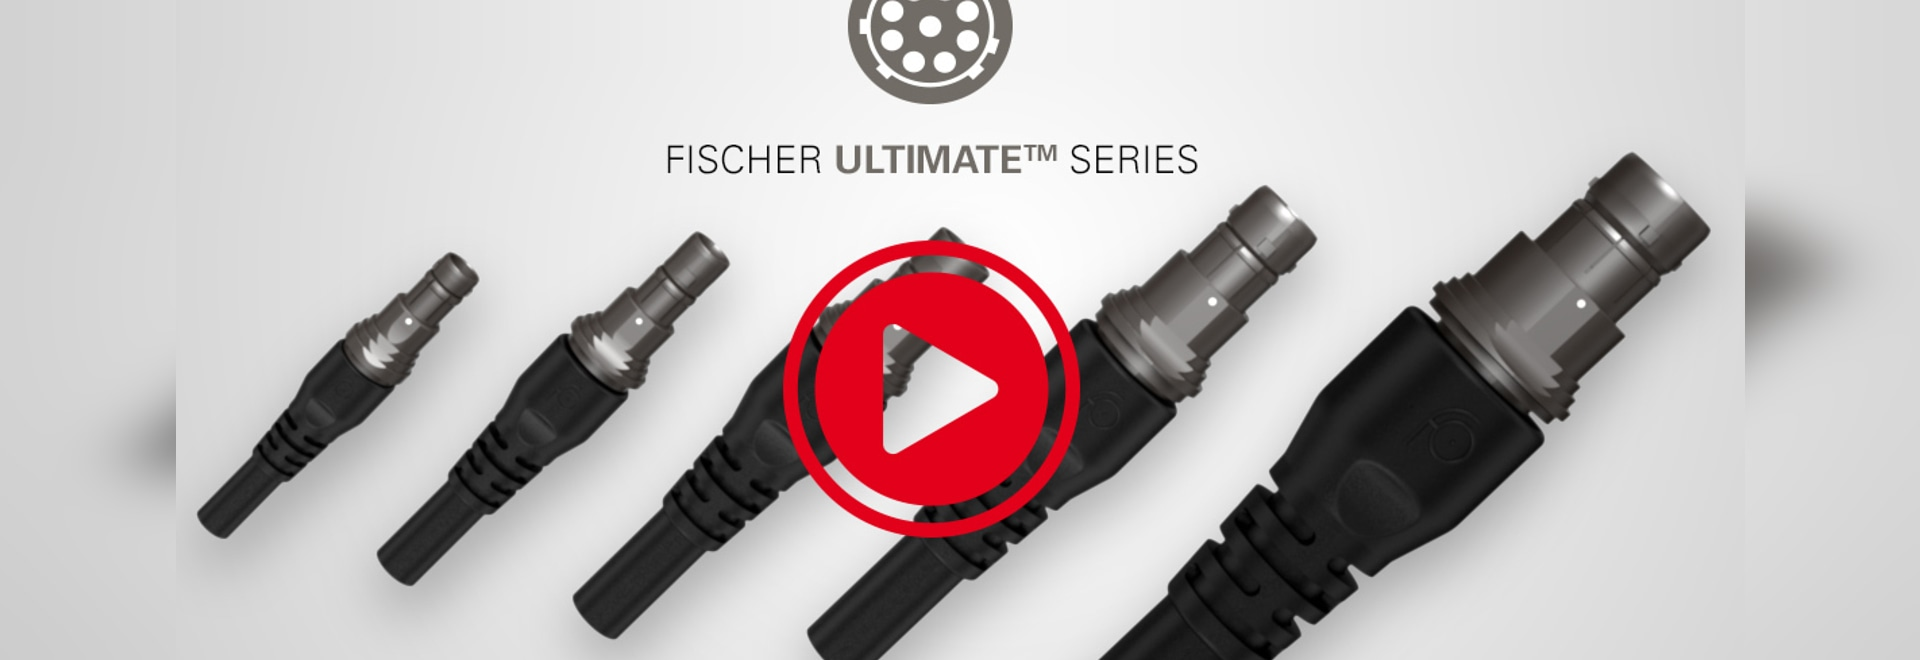 Fischer UltimateTM Series